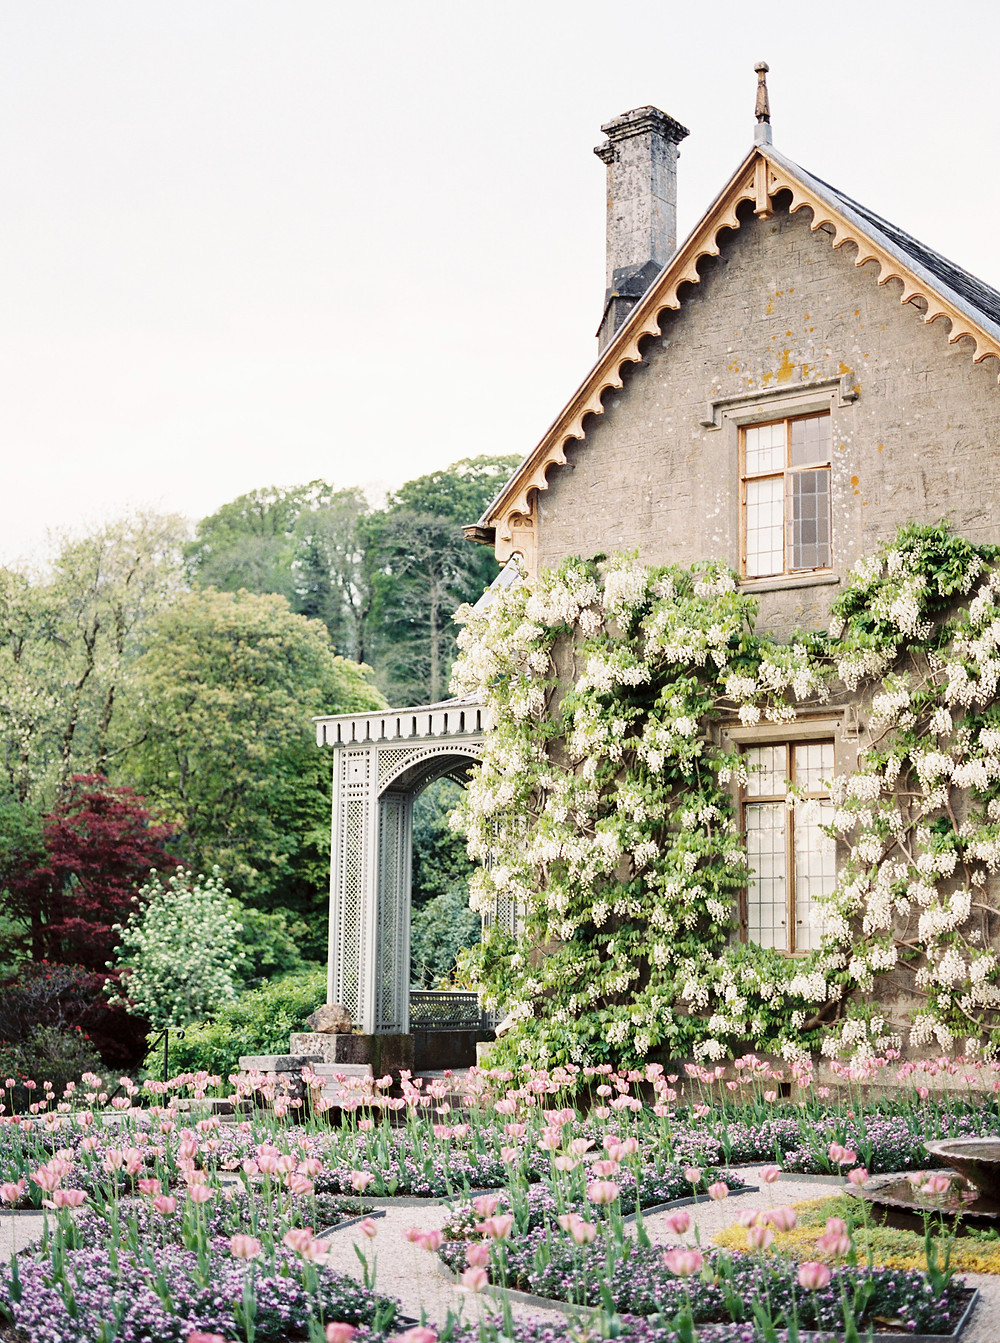 Hotel Endsleigh Wedding - Devon Wedding Venue